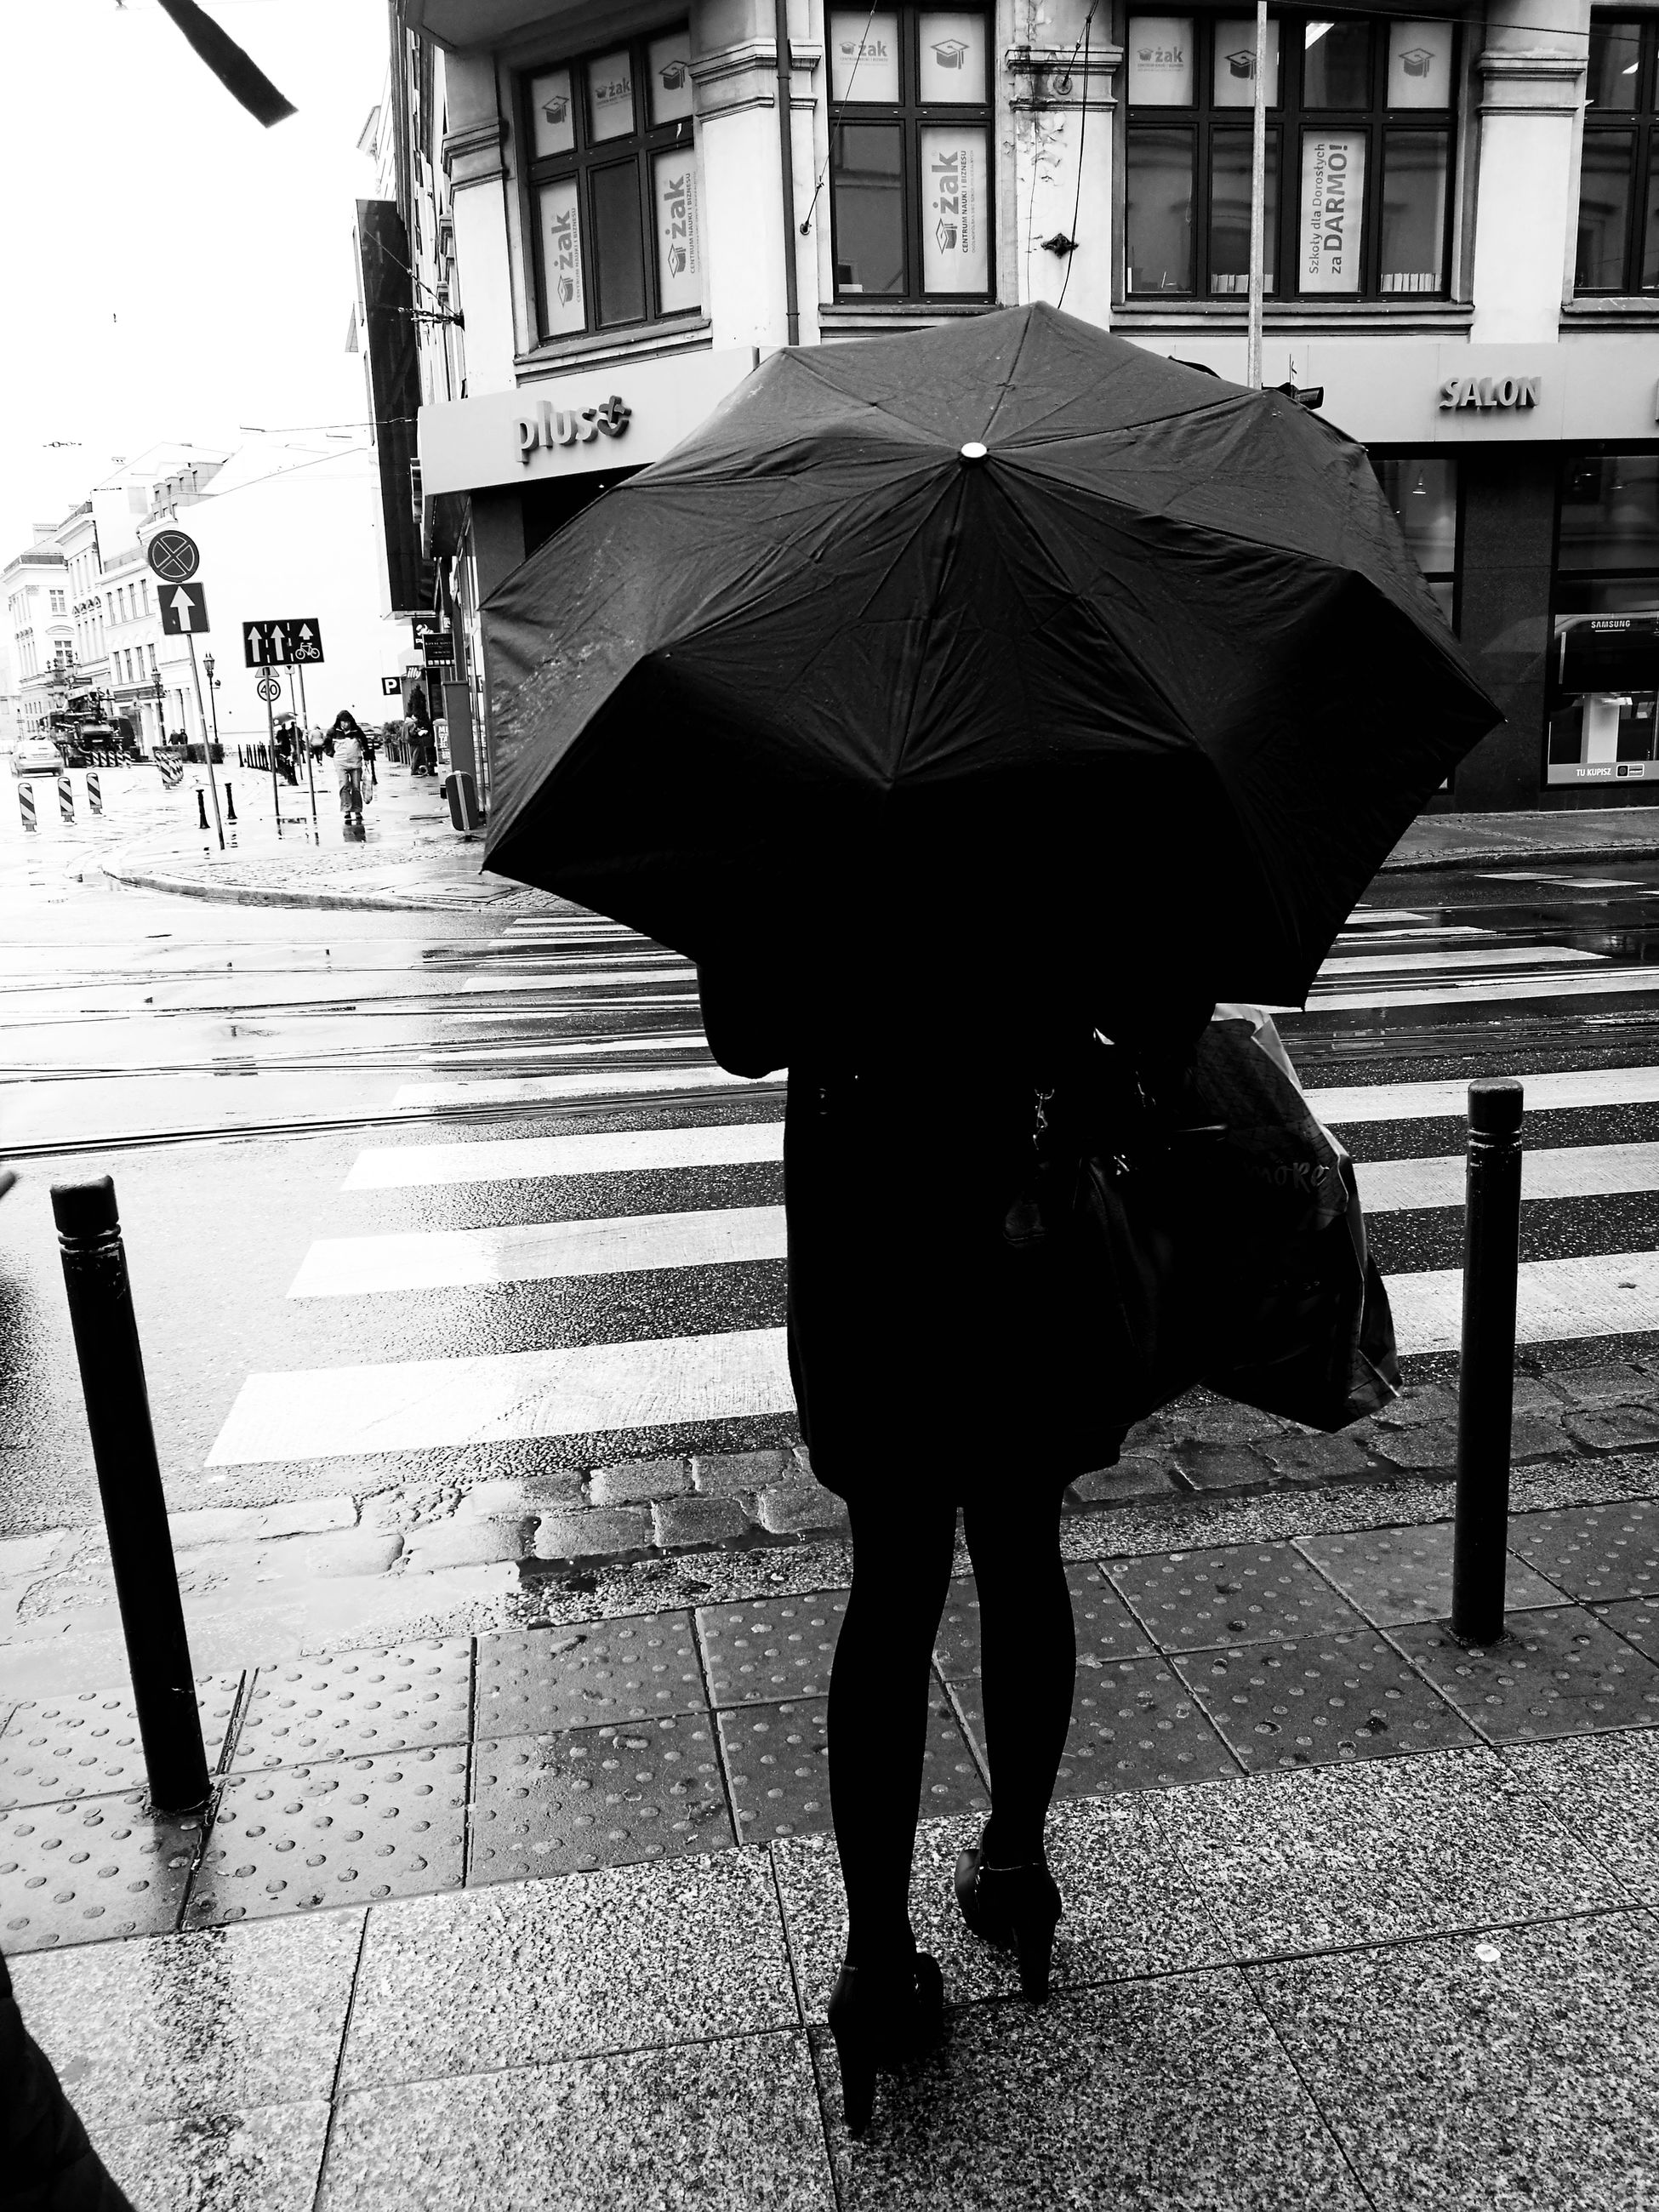 umbrella, street, season, rain, building exterior, city, weather, walking, architecture, city life, built structure, travel, rear view, rainy, protection, monsoon, wet, lifestyles, men, rainy season, road, transportation, holding, car, city street, leisure activity, water, casual clothing, day